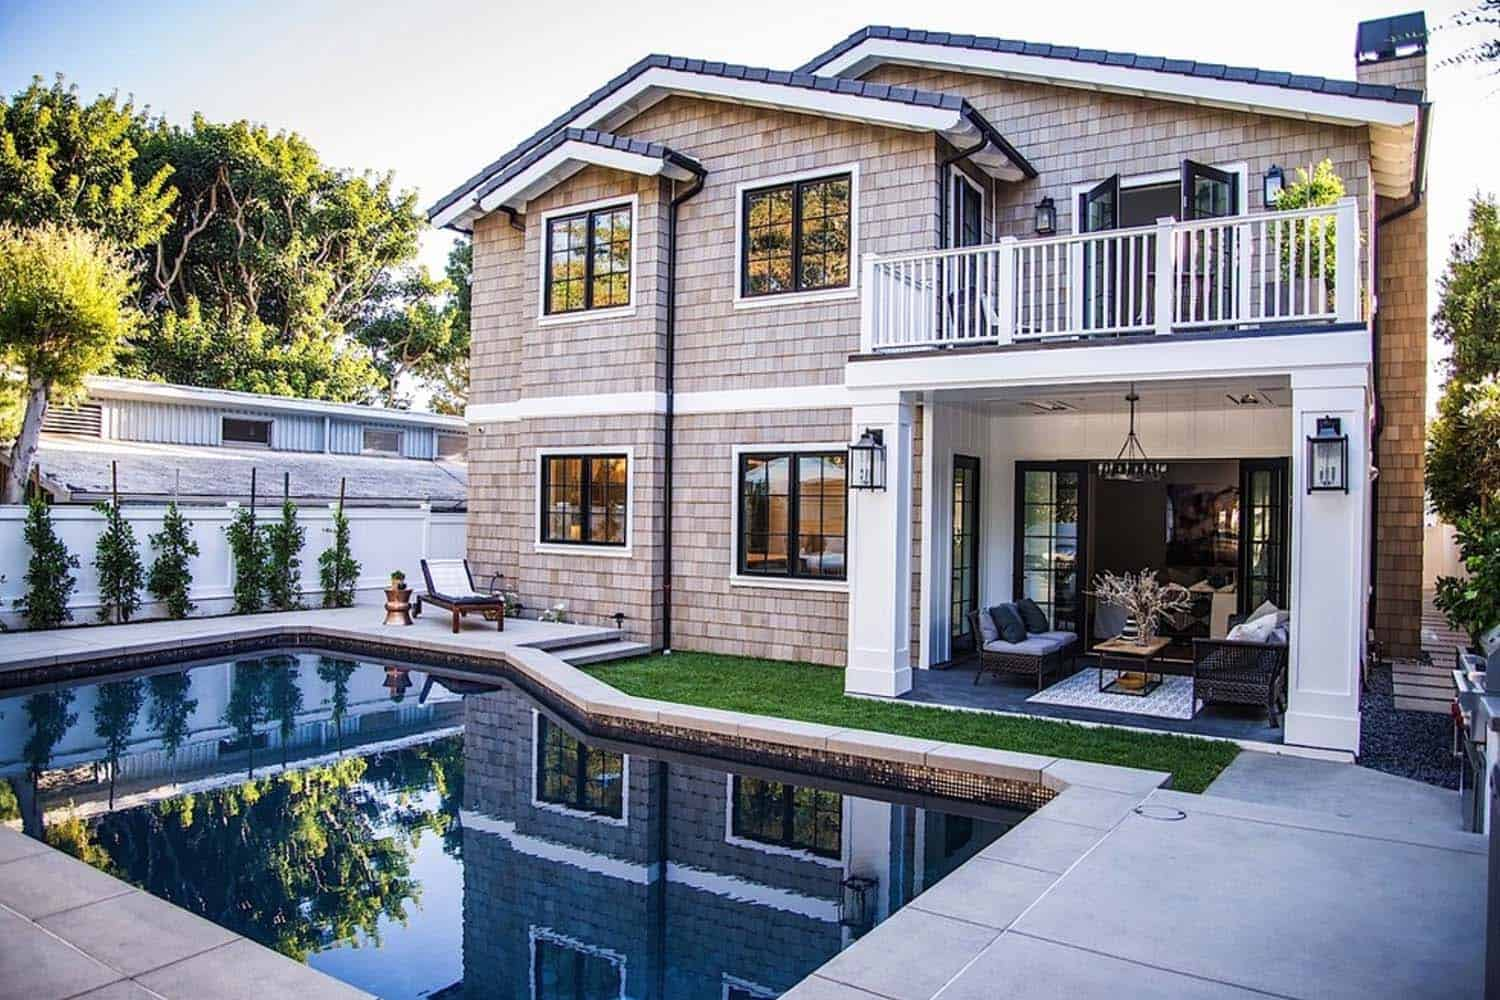 Modern Farmhouse Style-Boswell Construction-31-1 Kindesign